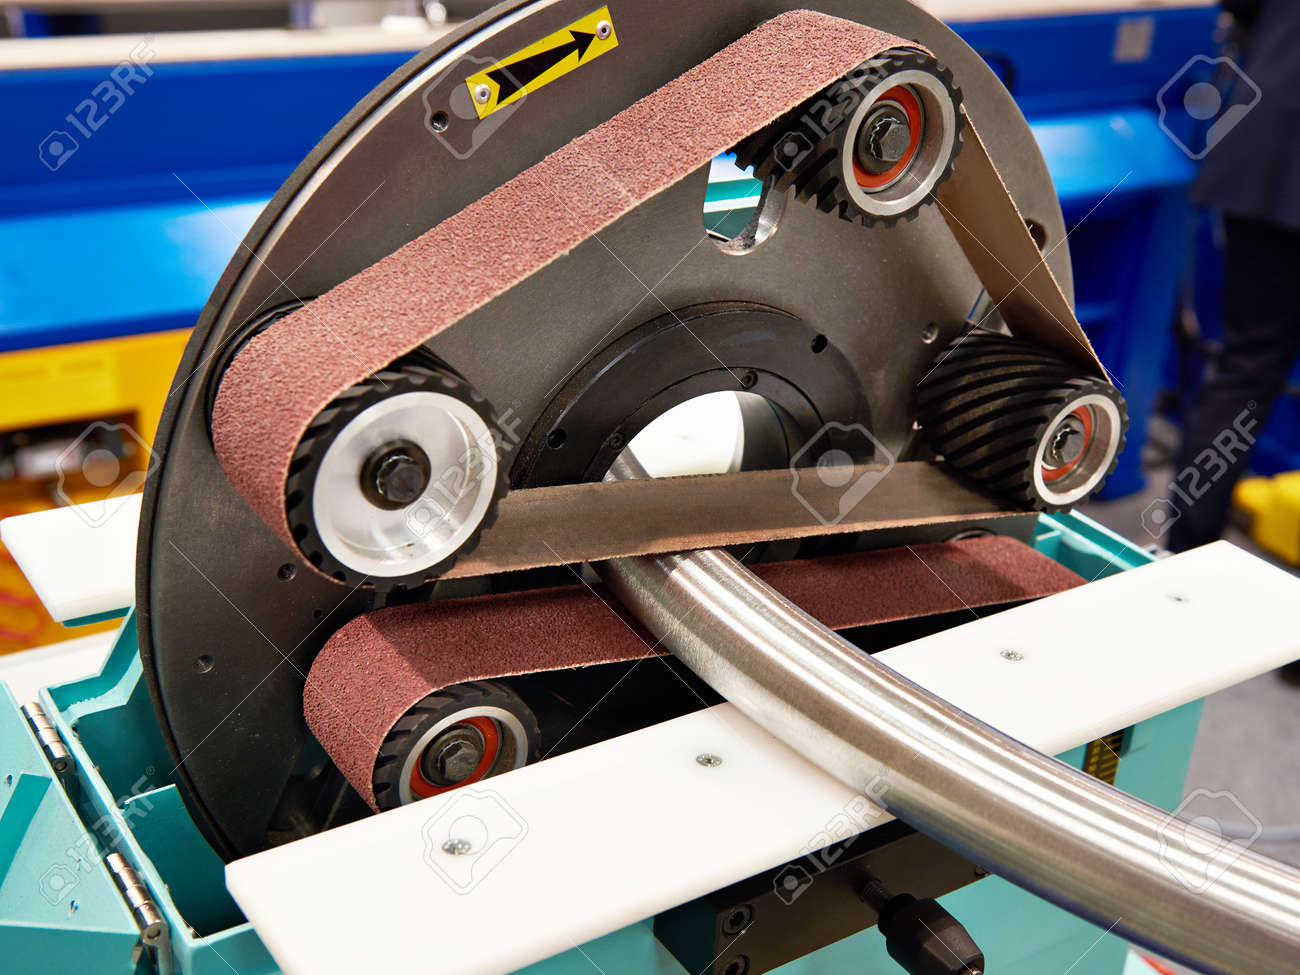 Pipe grinding machine with sandpaper - 82090222